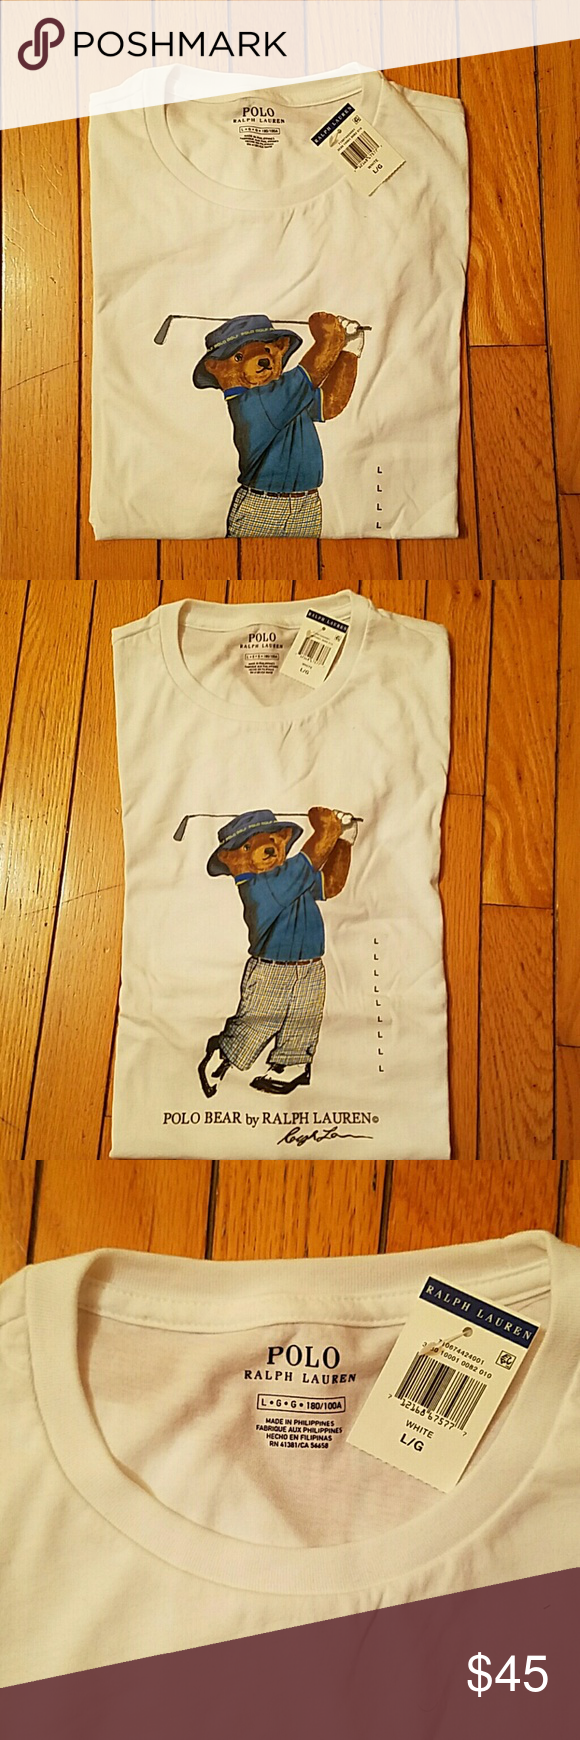 9d85ec44 2017 limited edition Polo Bear T-shirt Polo Bear Golf T-shirt price is  non-negotiable Ralph Lauren Shirts Tees - Short Sleeve